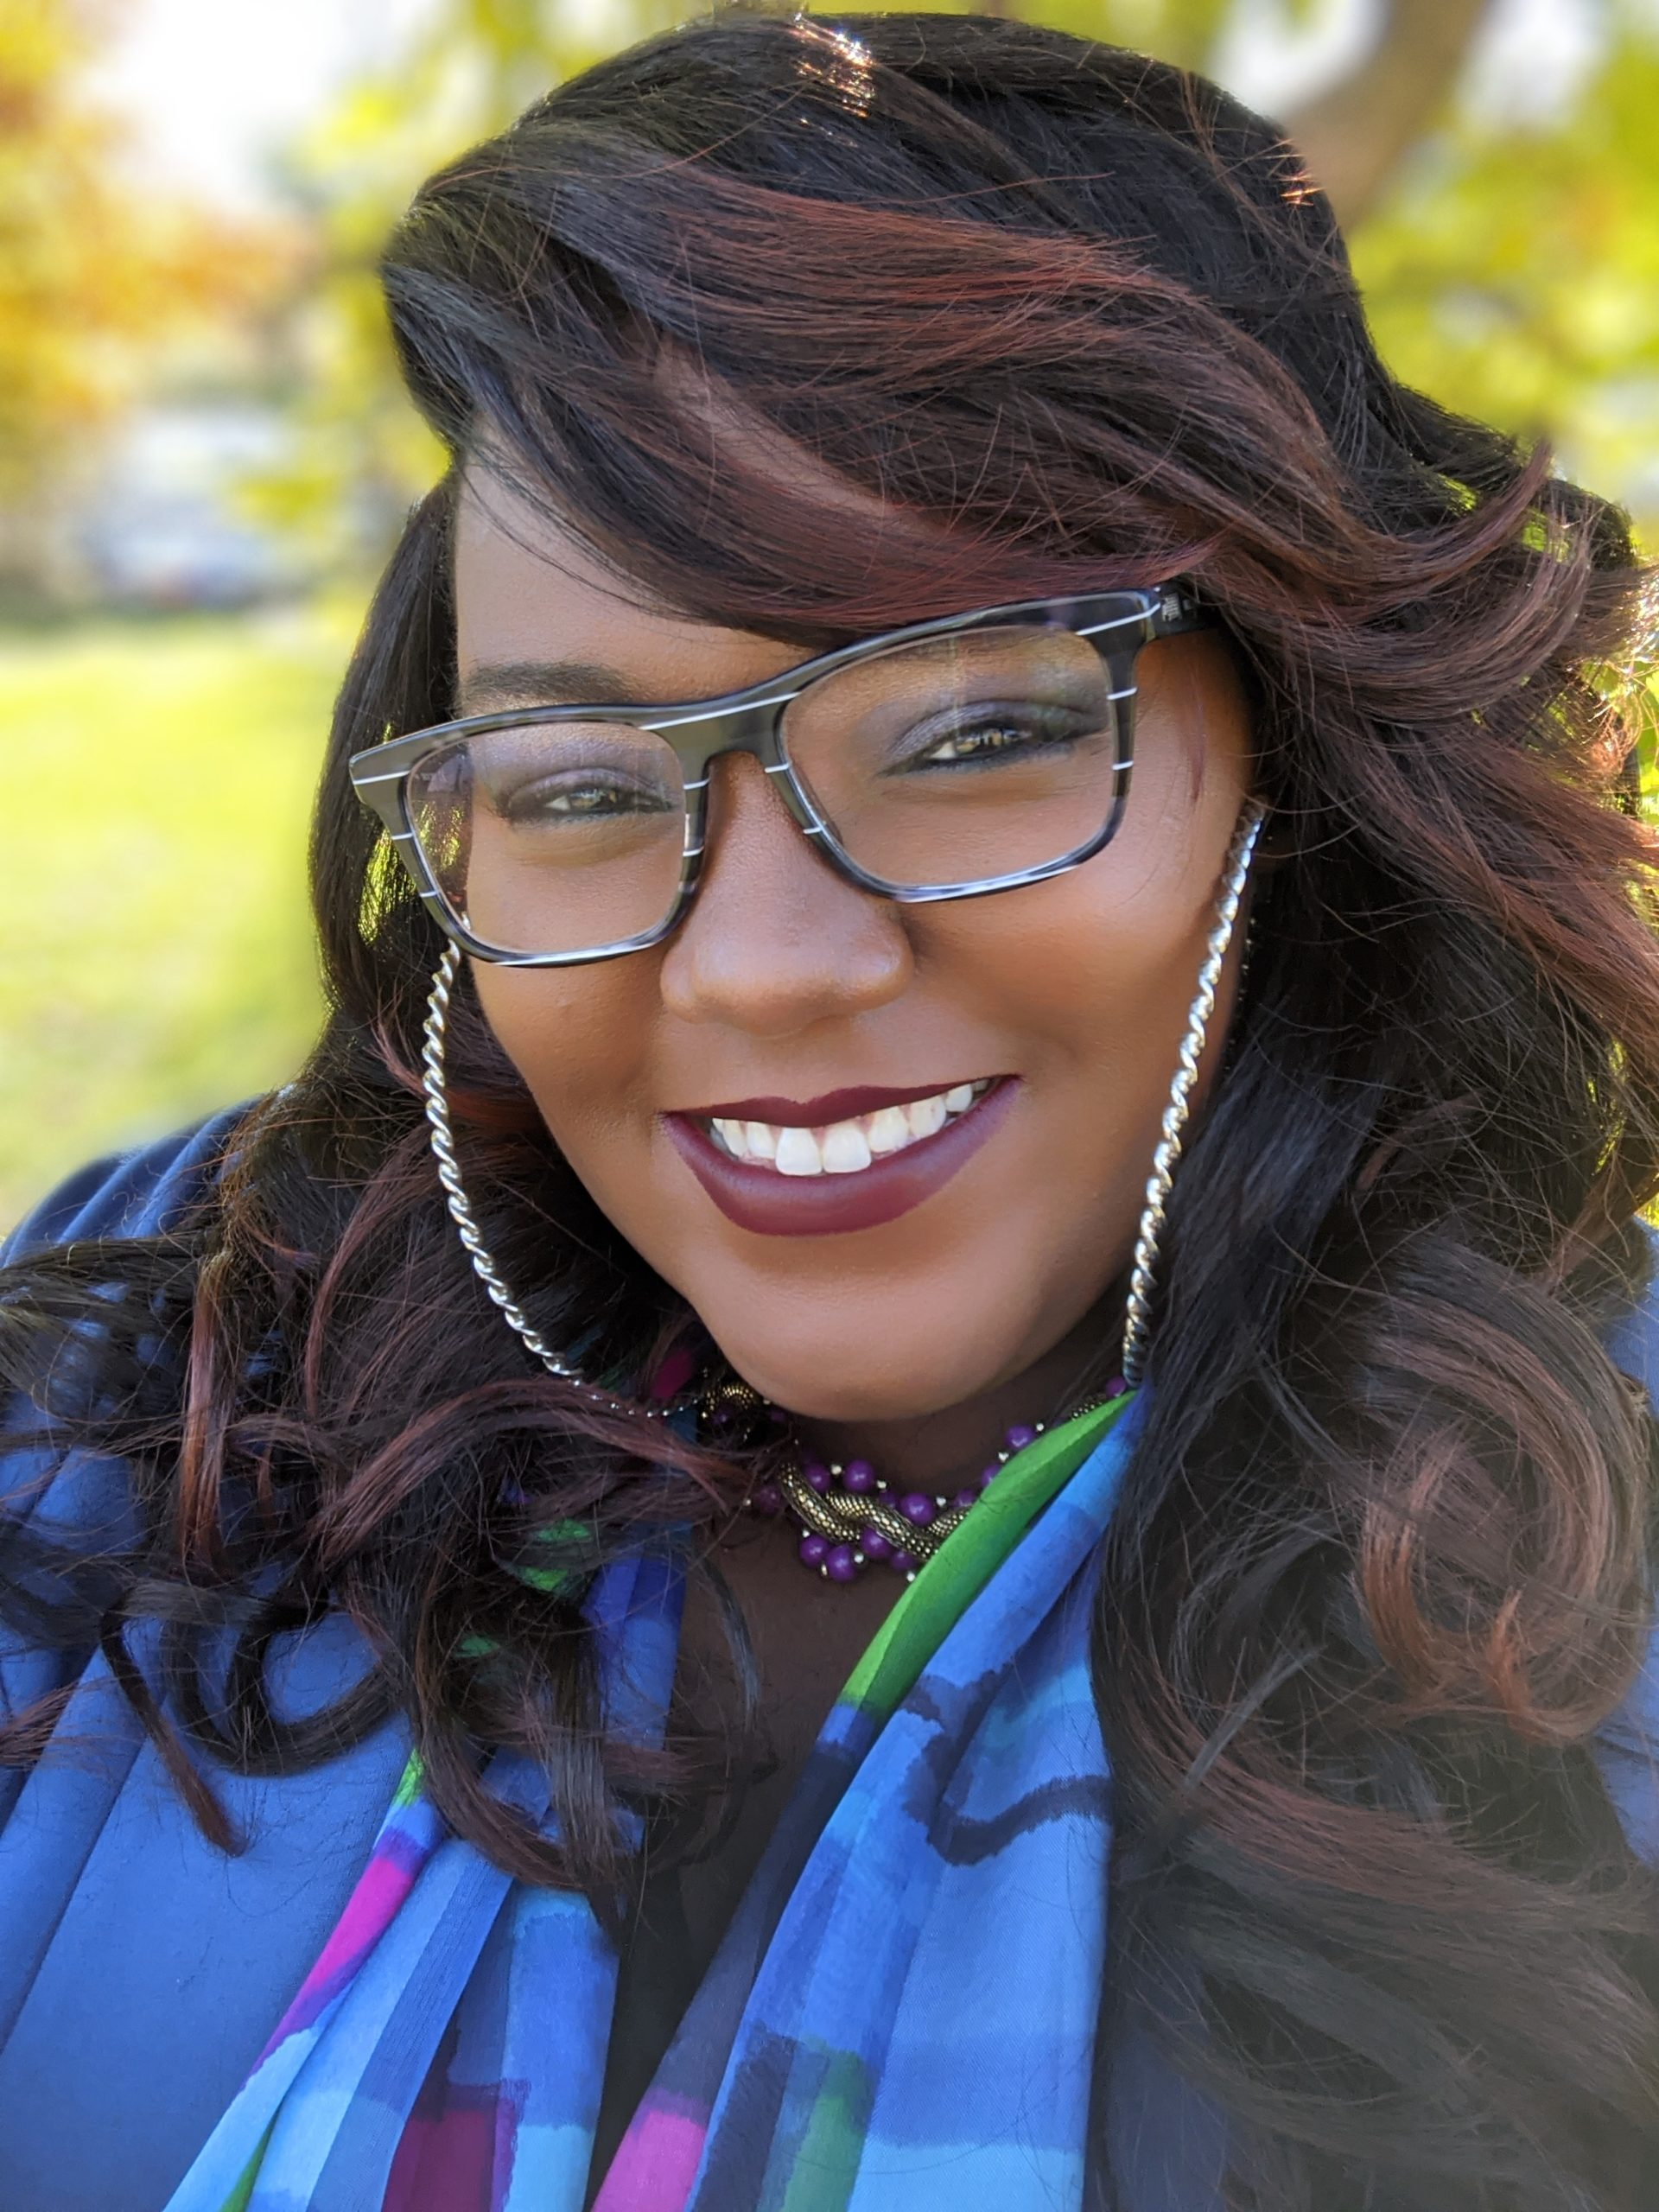 Ariangela Kozik is smiling wide, wearing glasses, big hoops, and a colorful scarf.